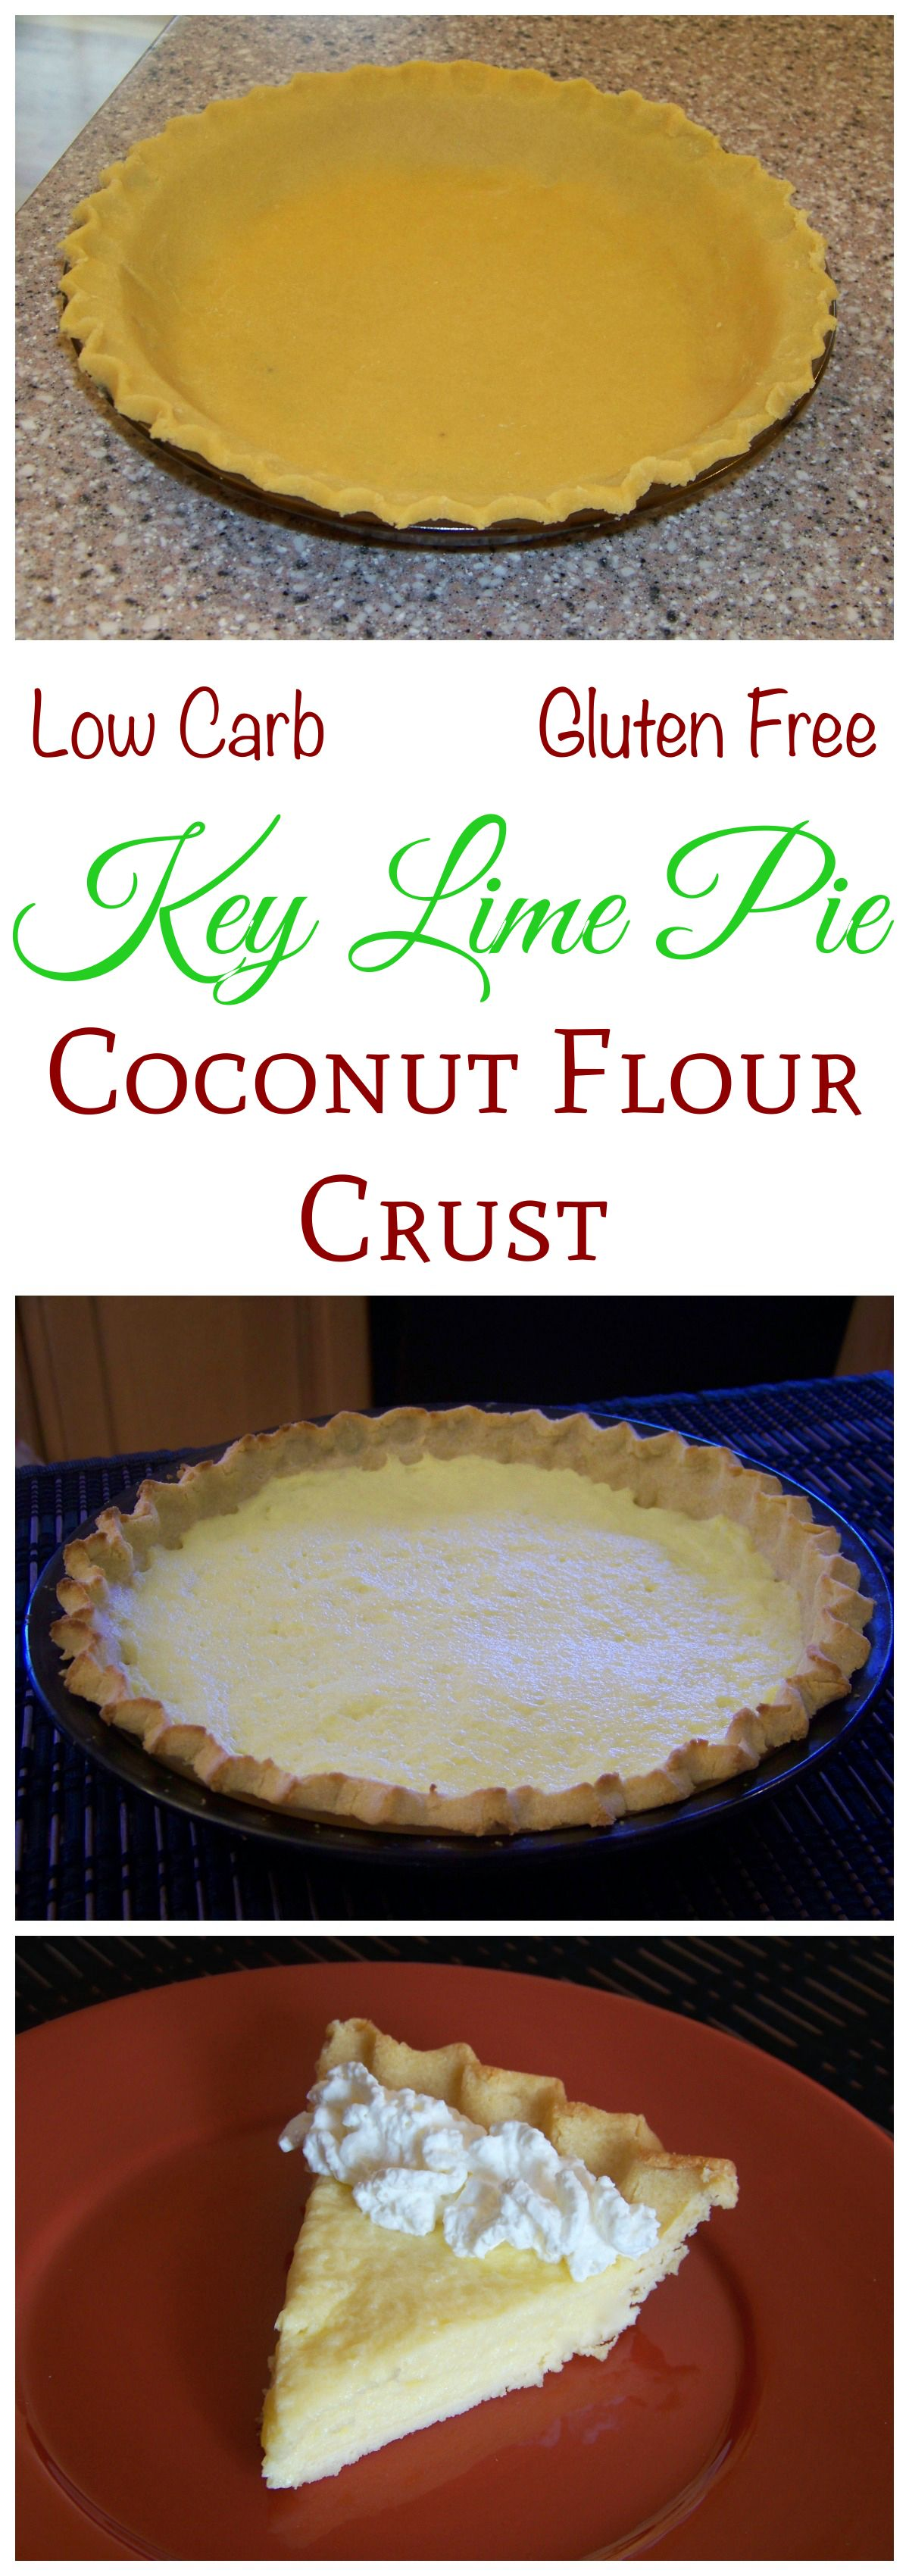 how to make gluten free pie crust with coconut flour